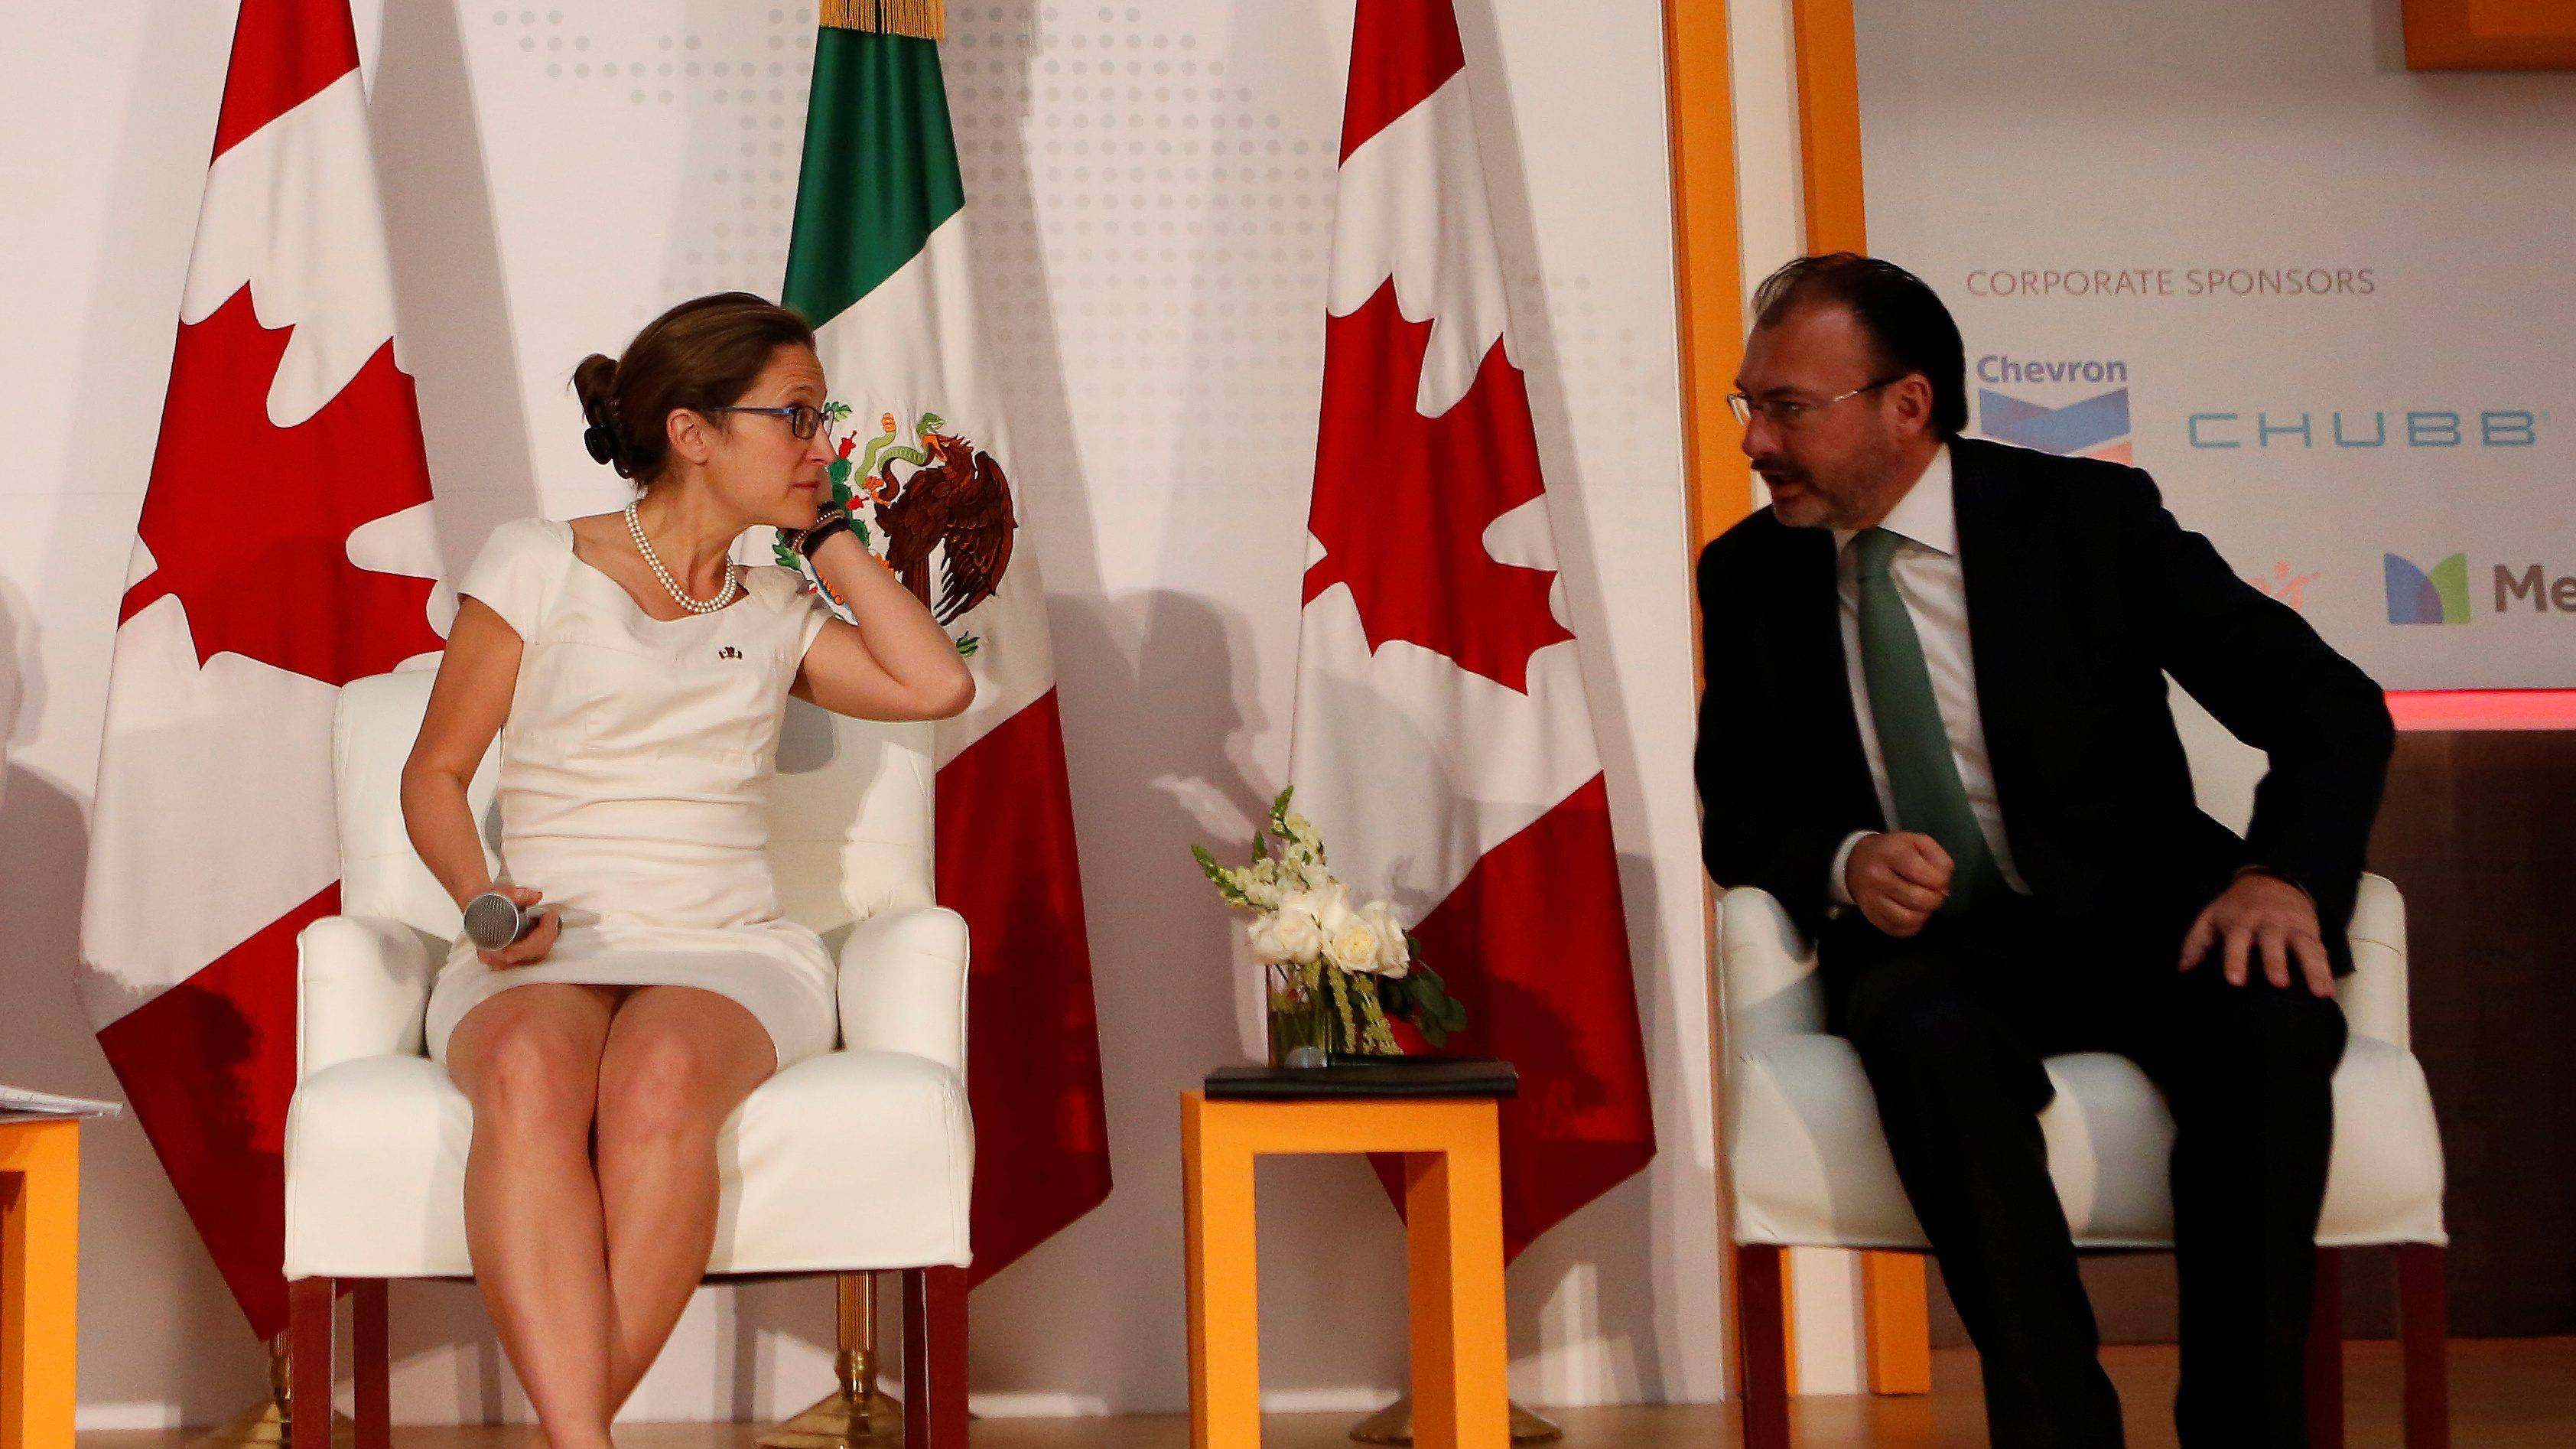 Canada's Foreign Minister Chrystia Freeland and her Mexican counterpart Luis Videgaray